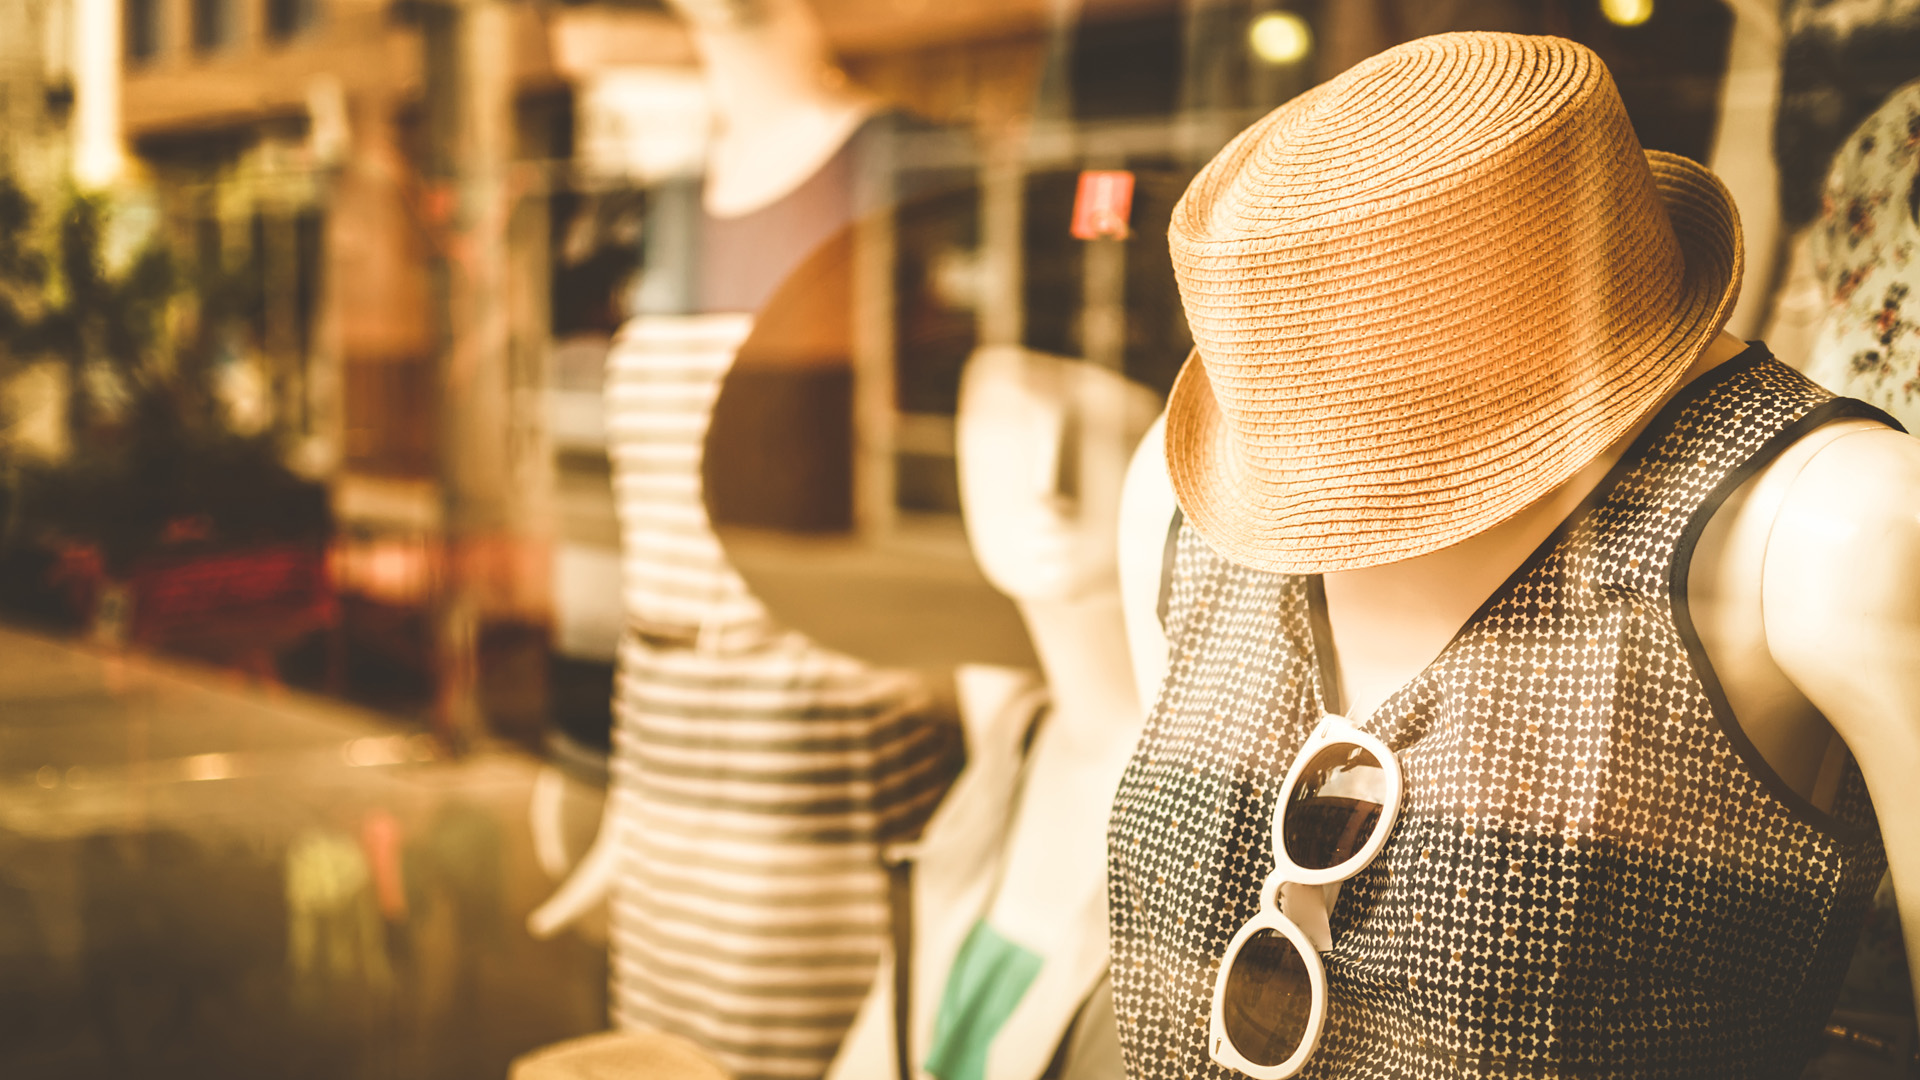 6-Major-Challenges-in-Retail-Industry-How-to-Overcome-Them